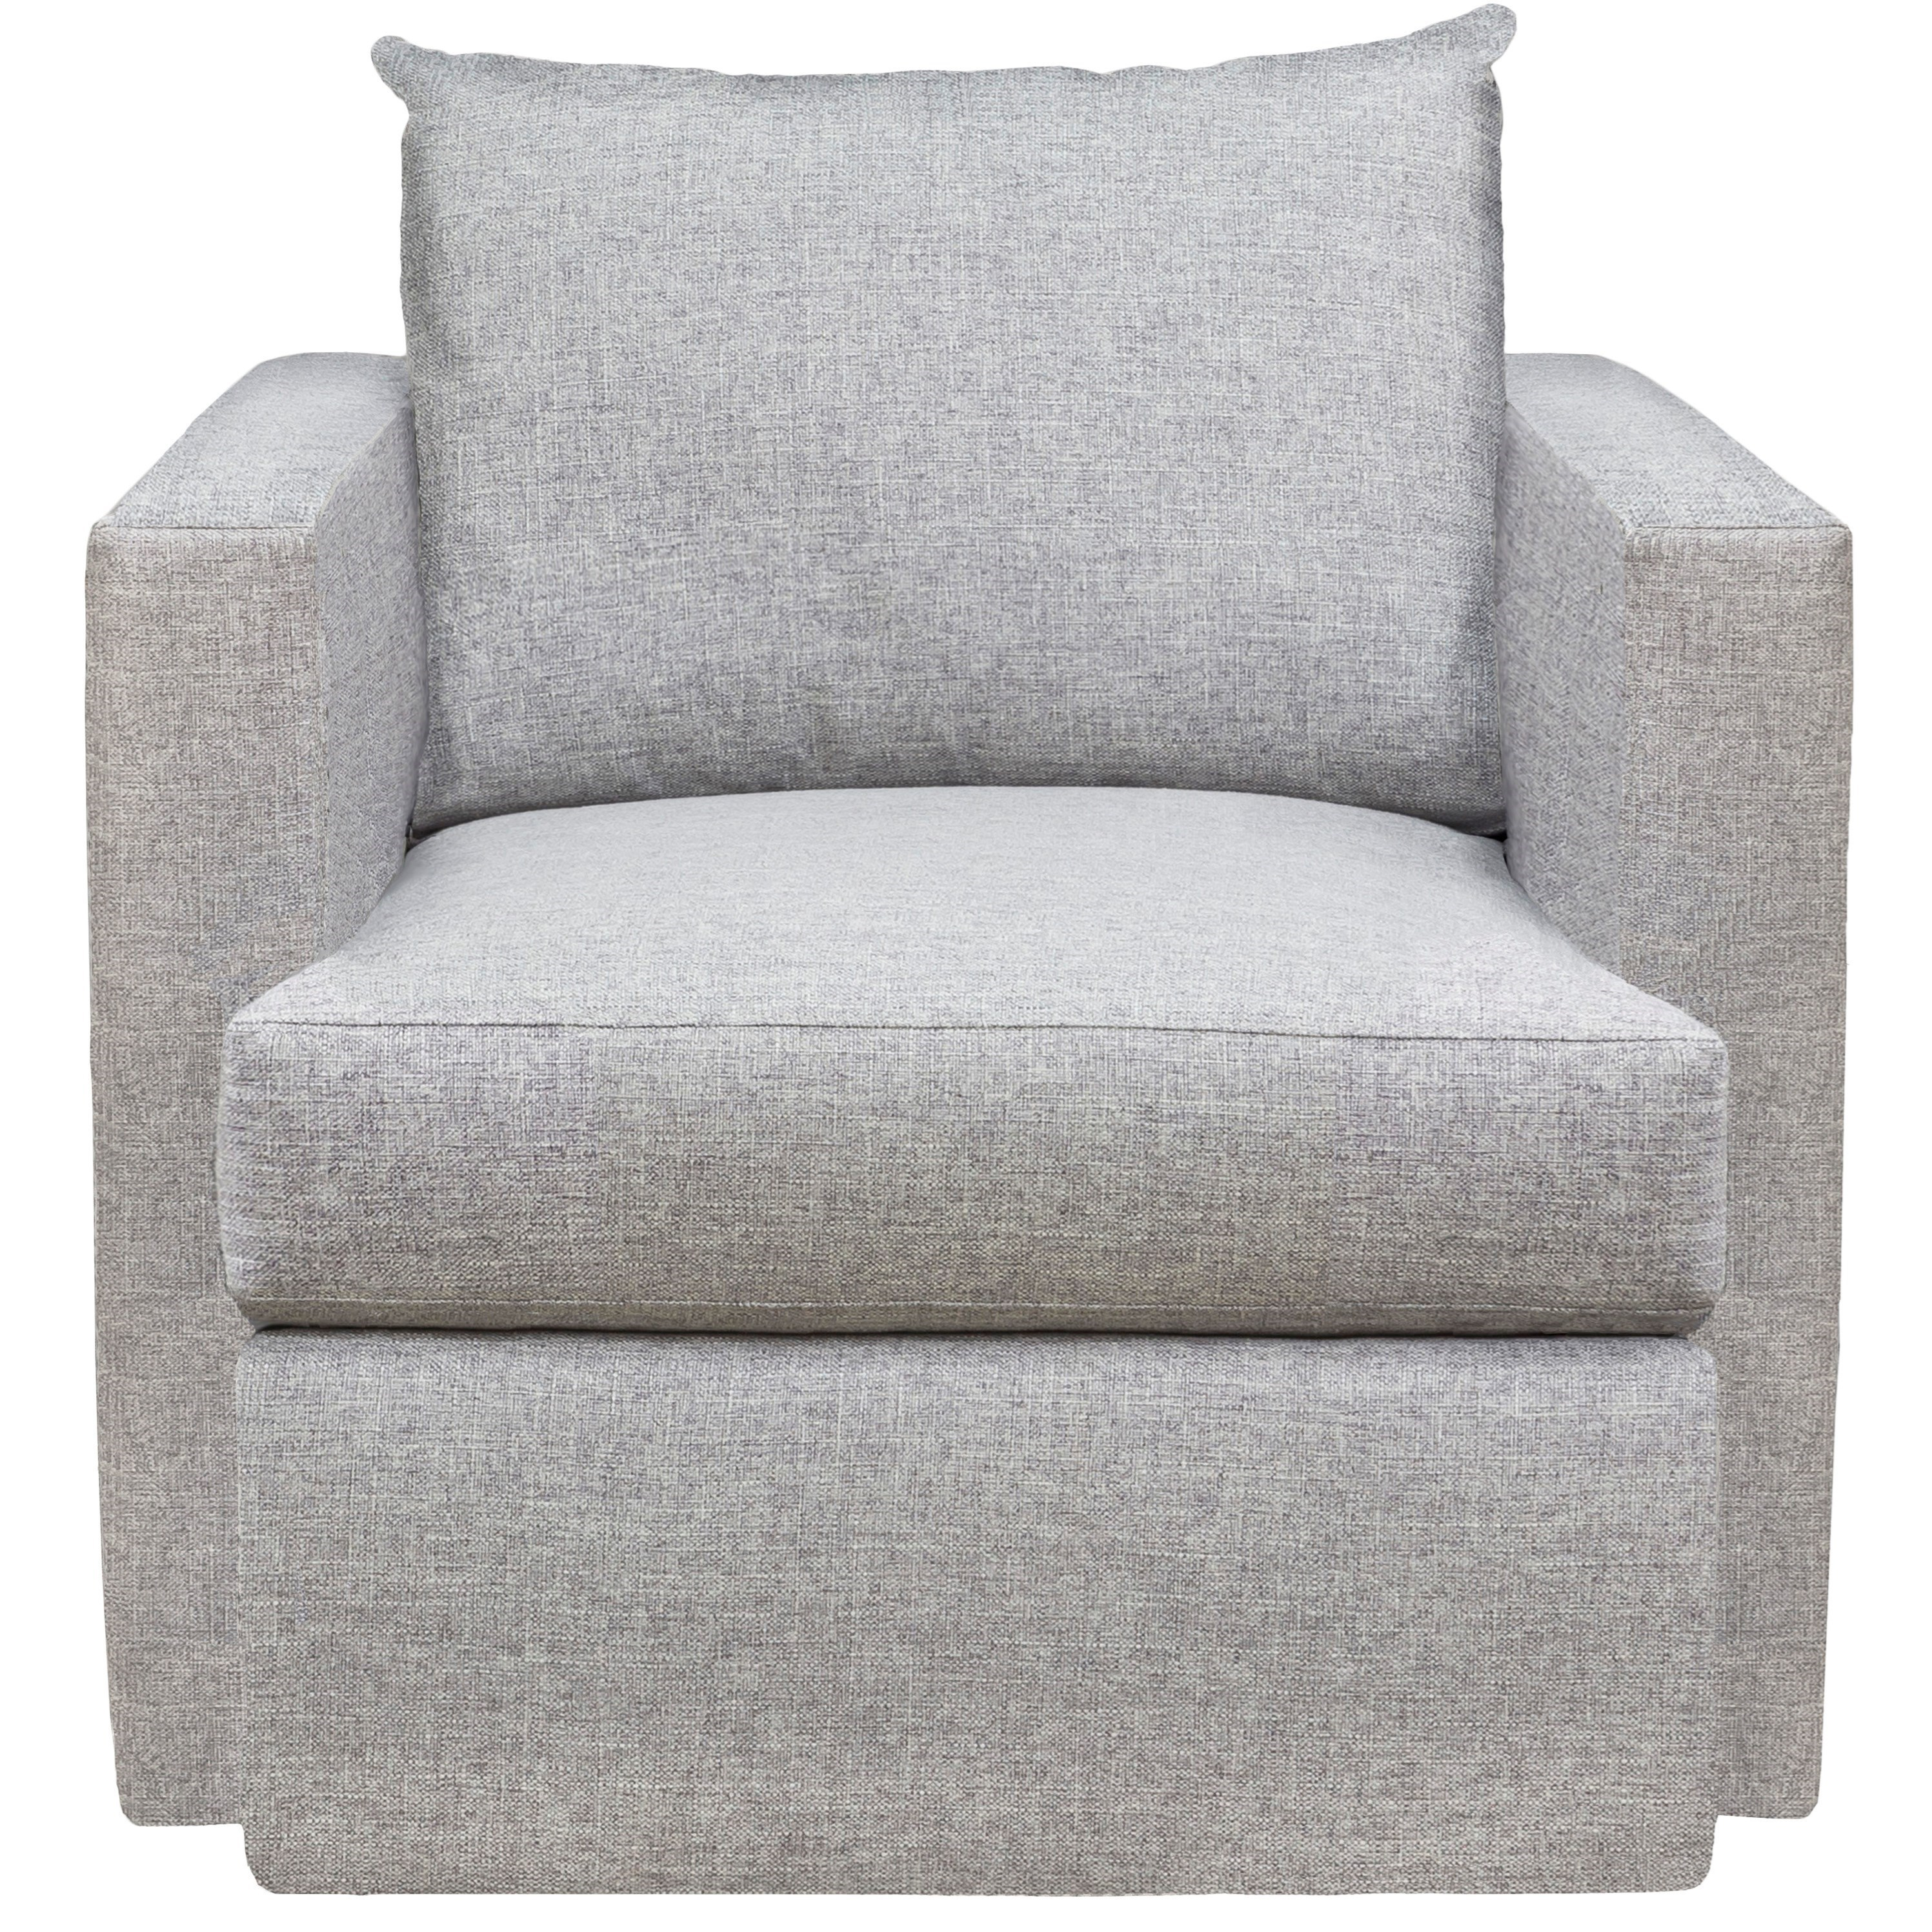 American Bungalow Emory Swivel Chair by Vanguard Furniture at Baer's Furniture